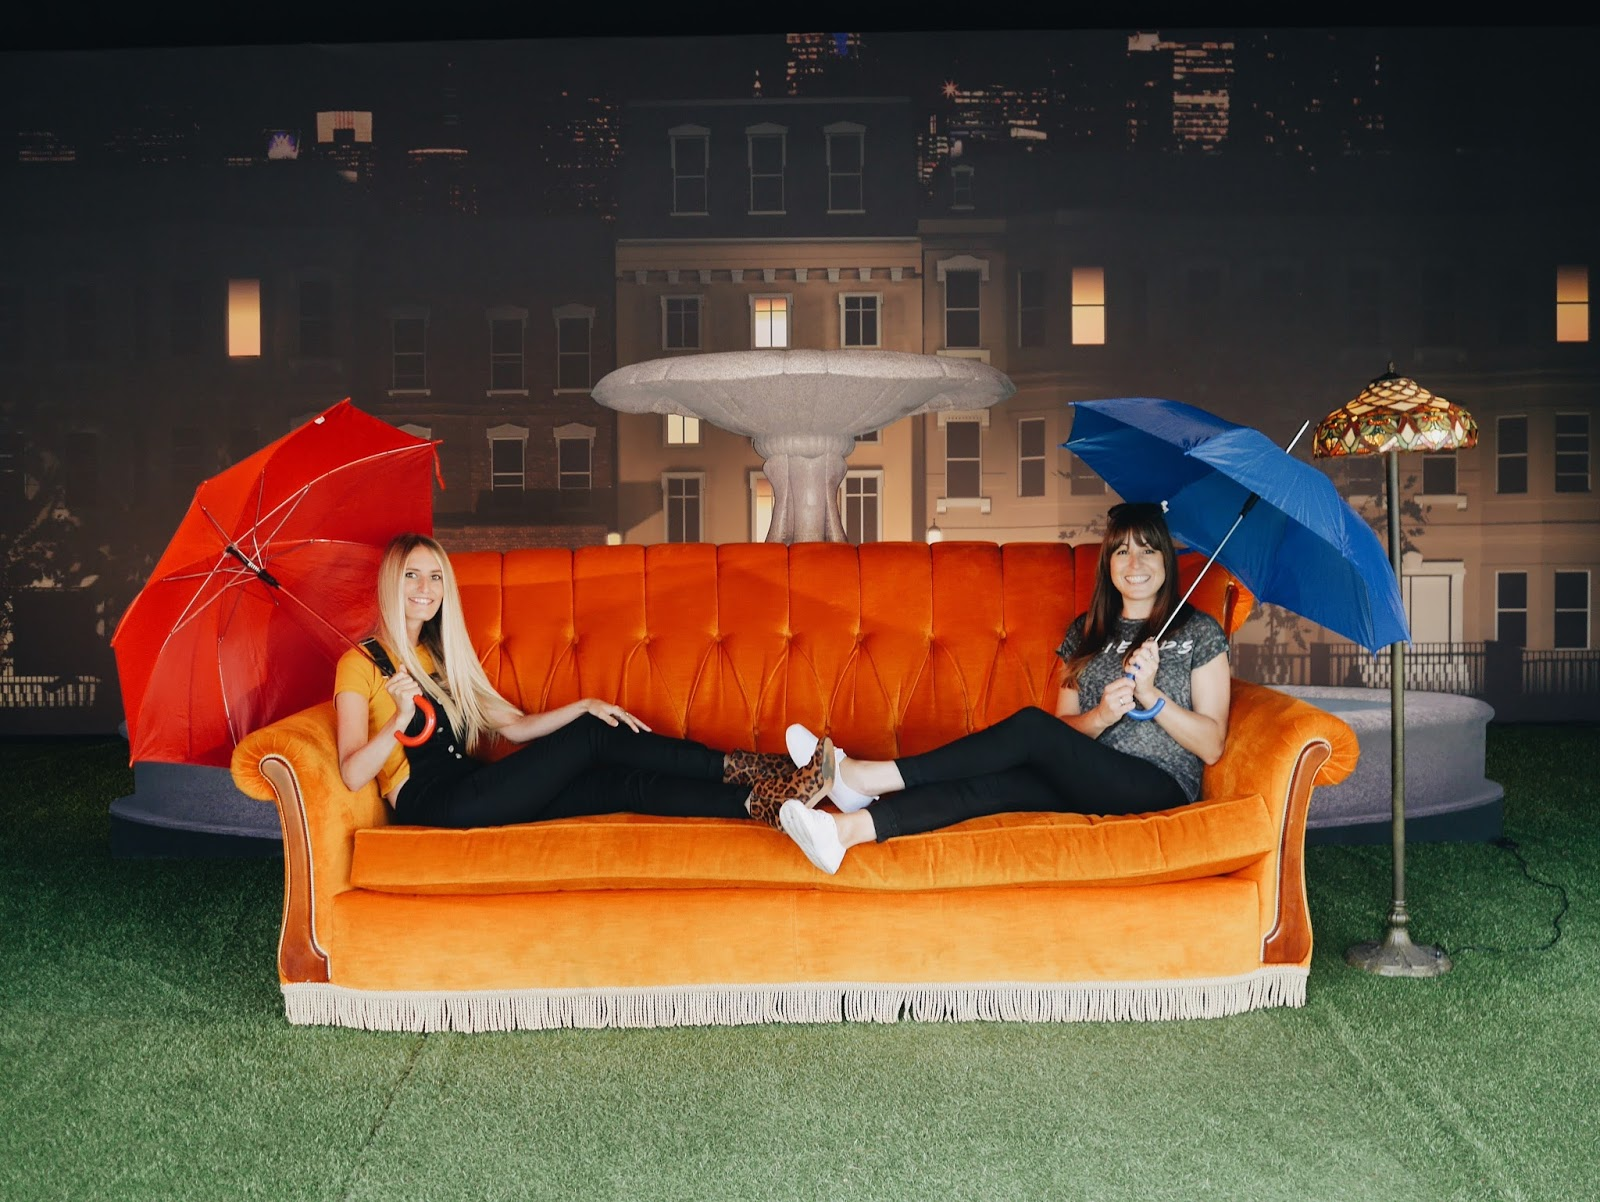 Sofa From Friends Cover Maker Singapore Central Perk Coffee Goes Under